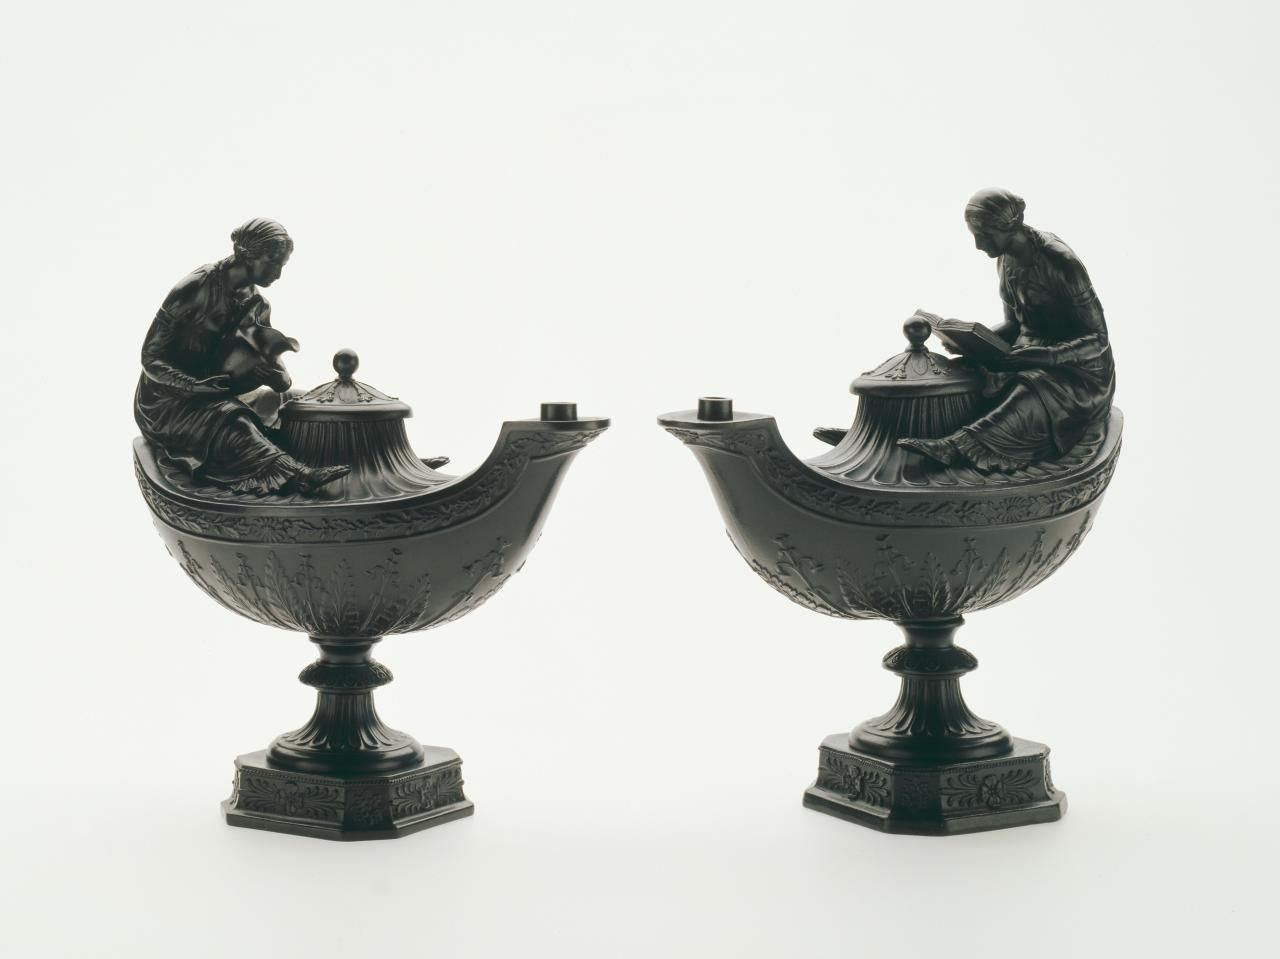 Pair of Vestal oil lamps